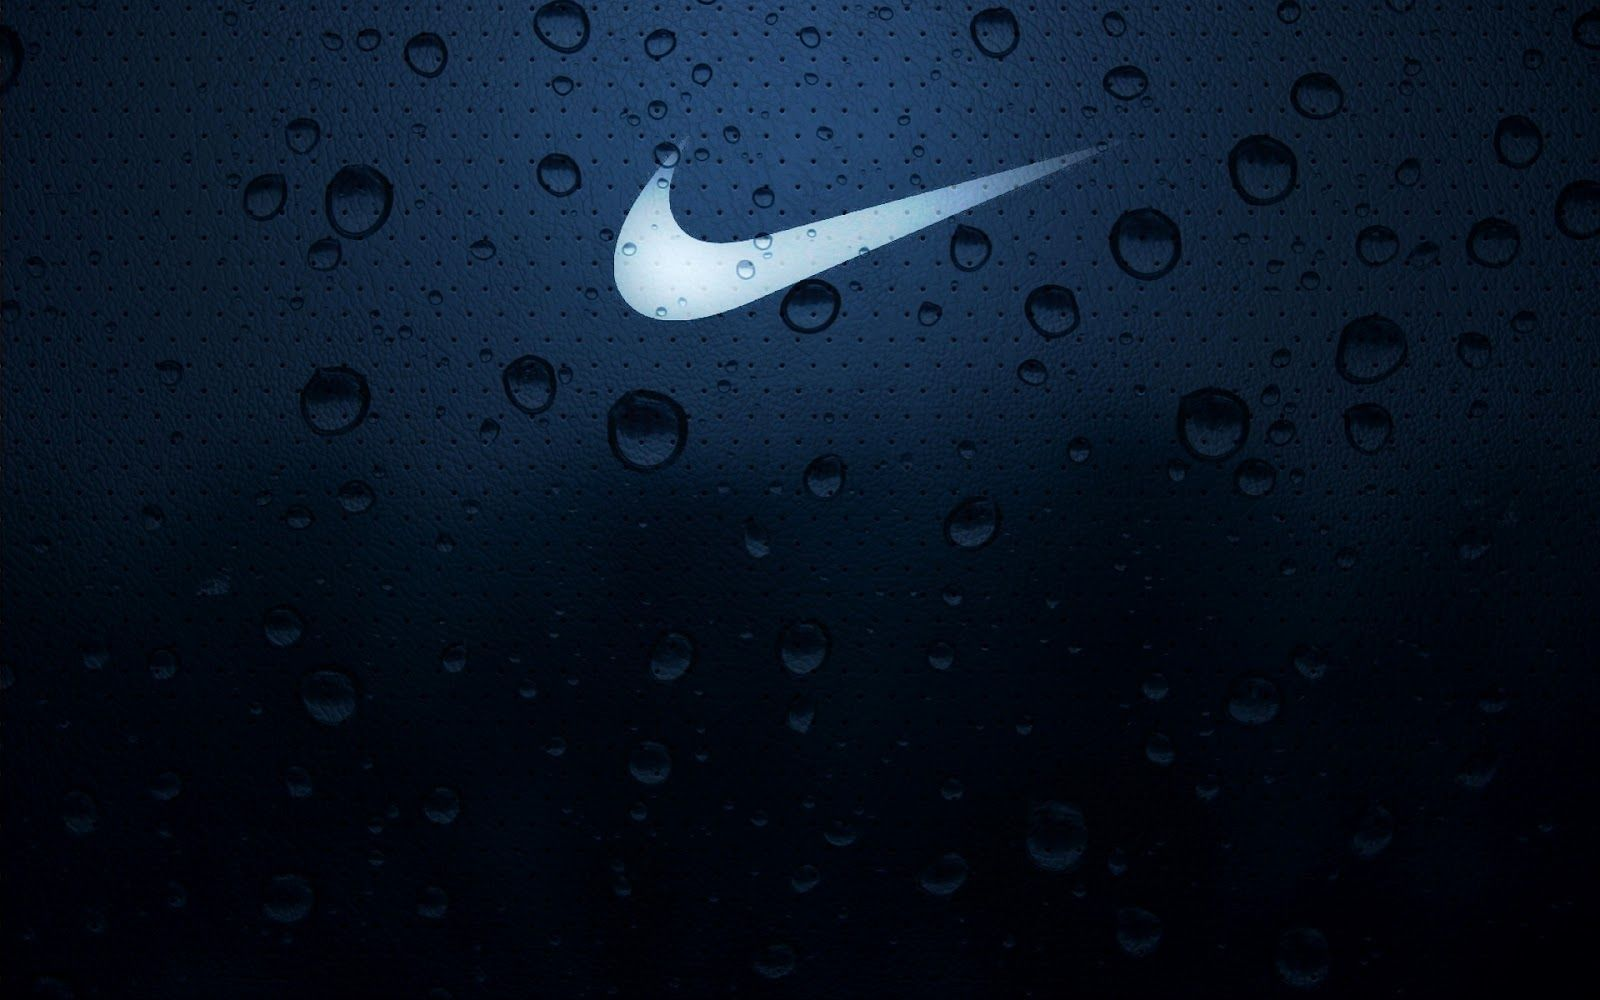 Hd wallpaper nike - Full Hd P Nike Wallpapers Hd Desktop Backgrounds 1024 768 Imagens Da Nike Wallpapers